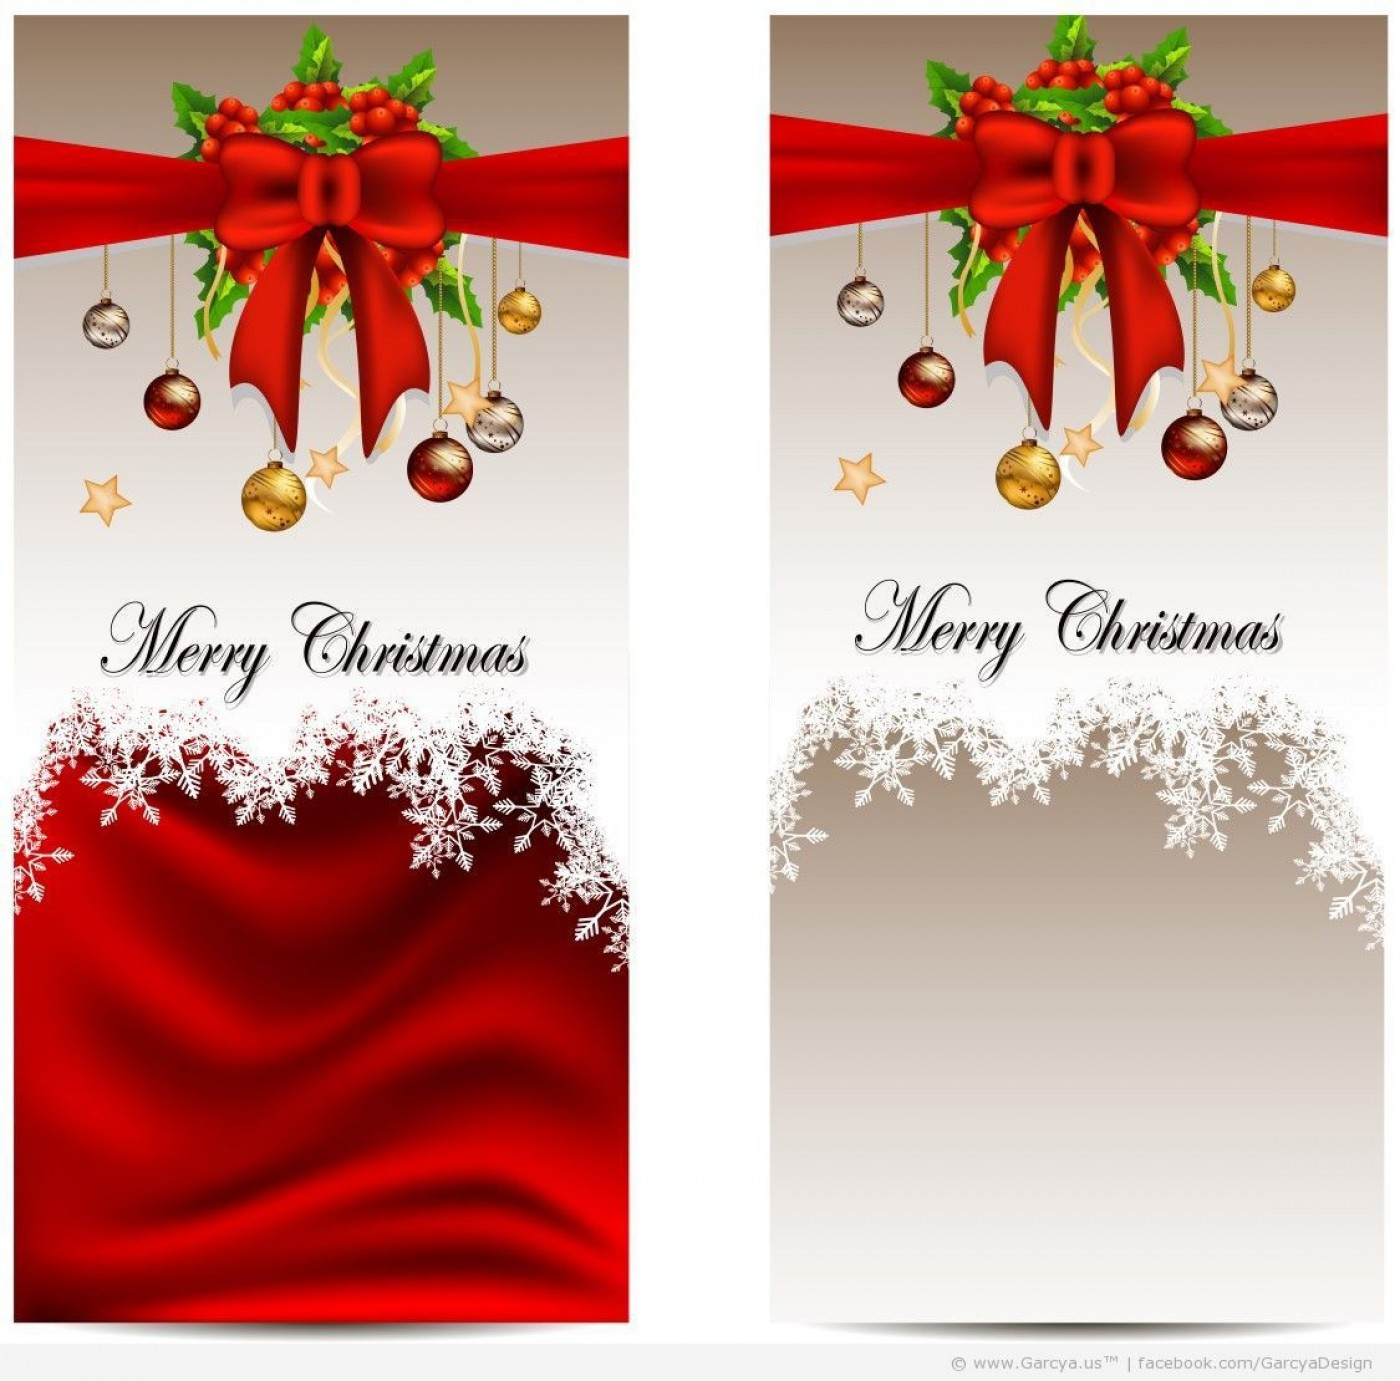 001 Incredible Christma Card Template Free Download High Definition  Photo Xma Place1400